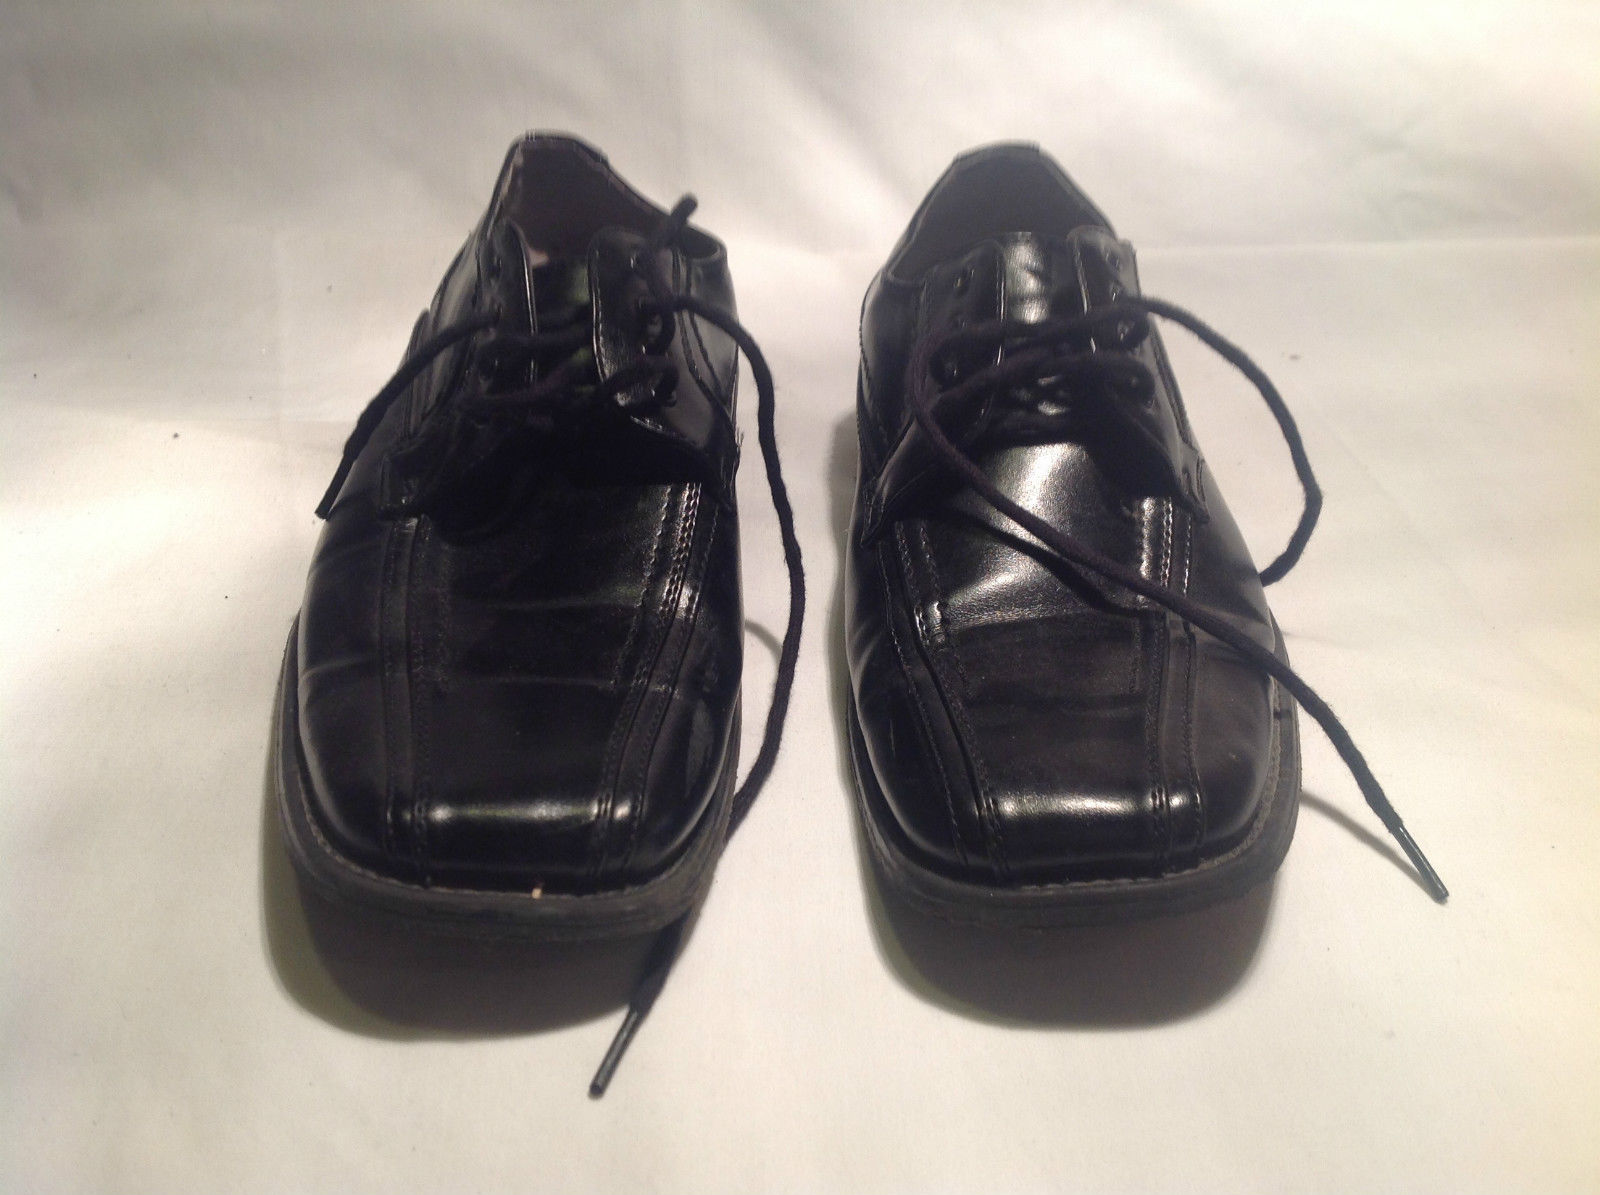 Stacy Adams Black Tied Dress Shoes Unmarked Size Good Condition Gray Insole